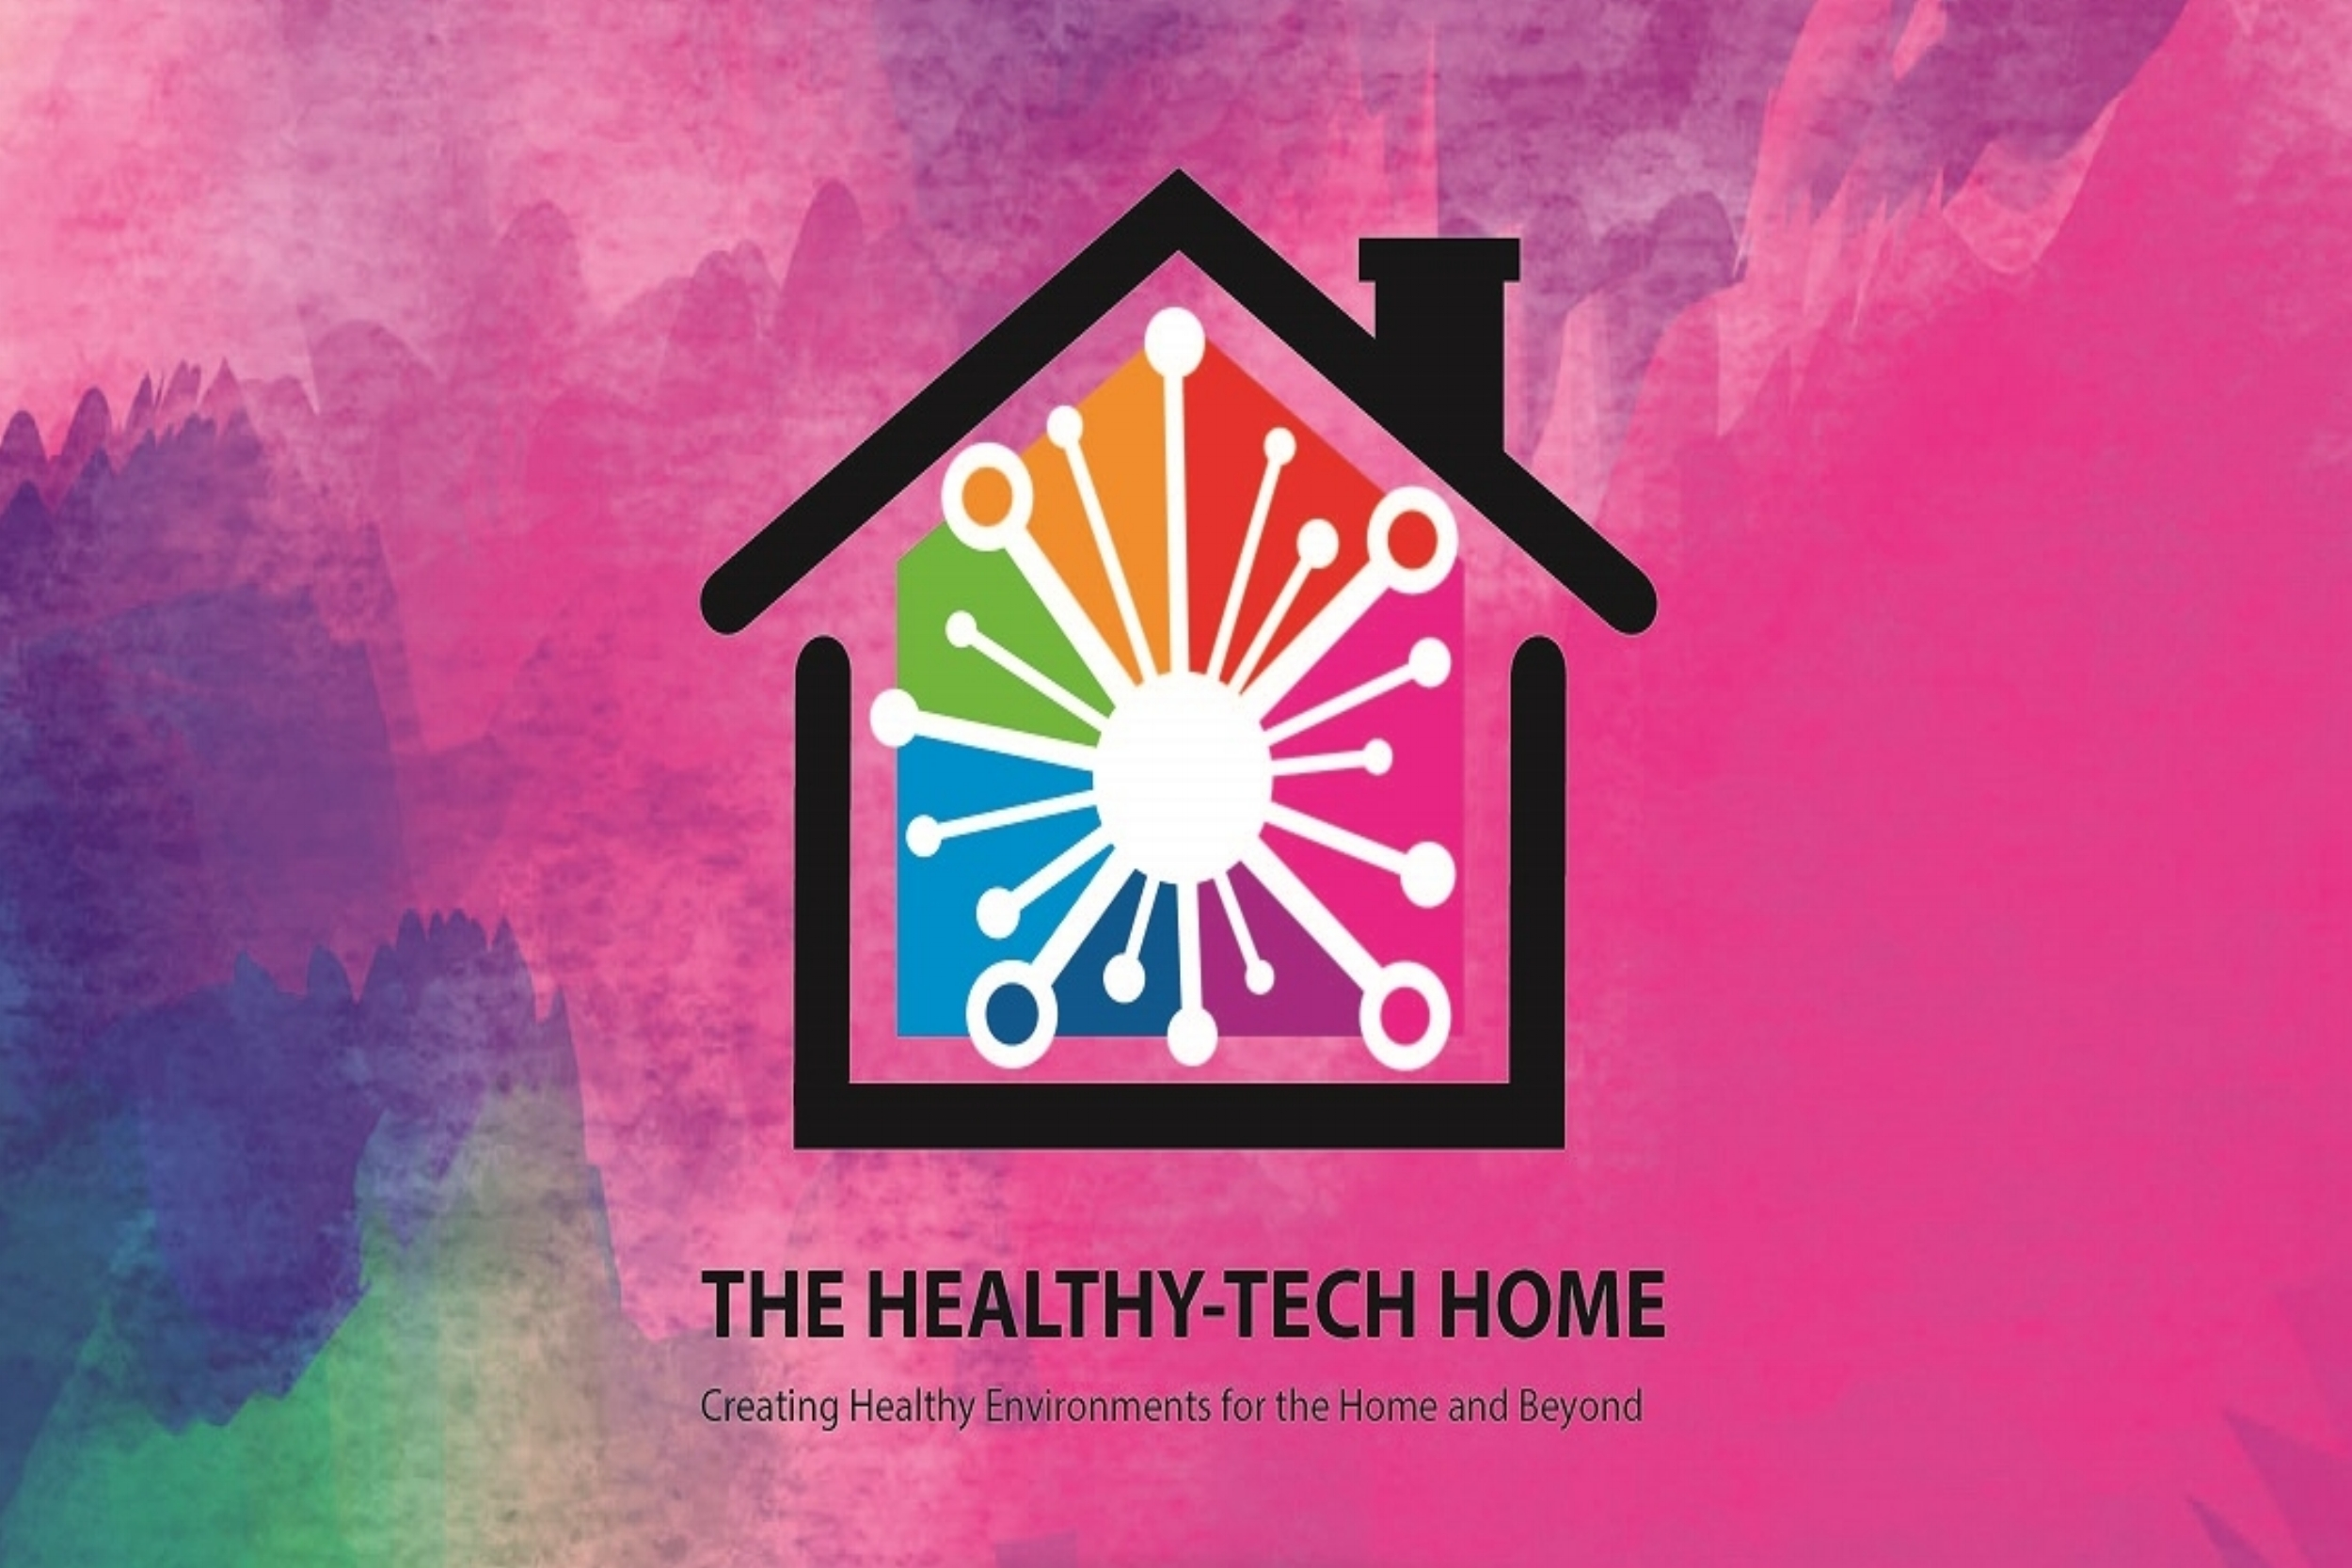 Healthy-tech home - Create healthy technological environments for the home and beyond.